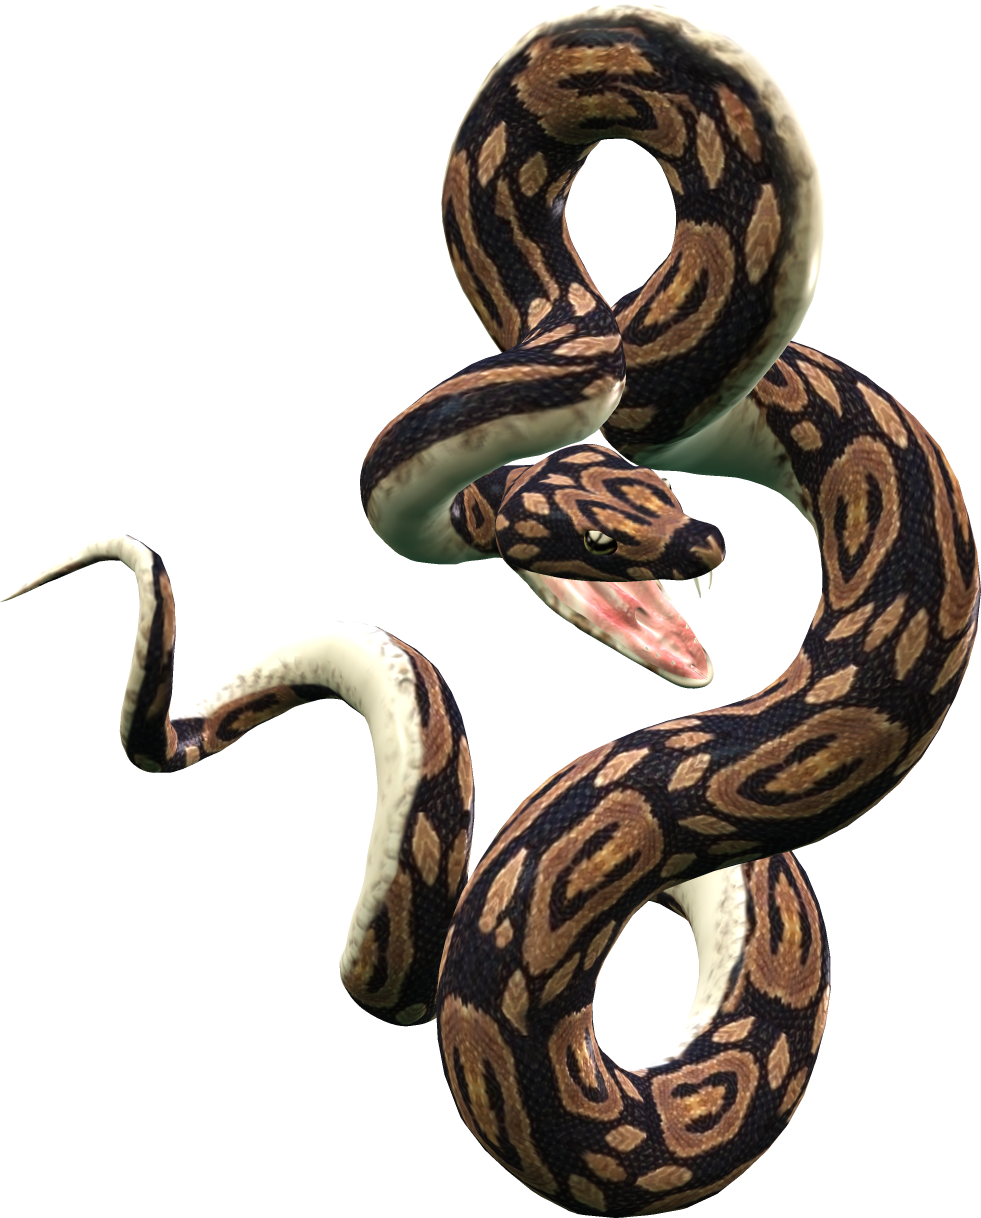 Python Snake Png - Snake Png Image Picture Download Free, Transparent background PNG HD thumbnail